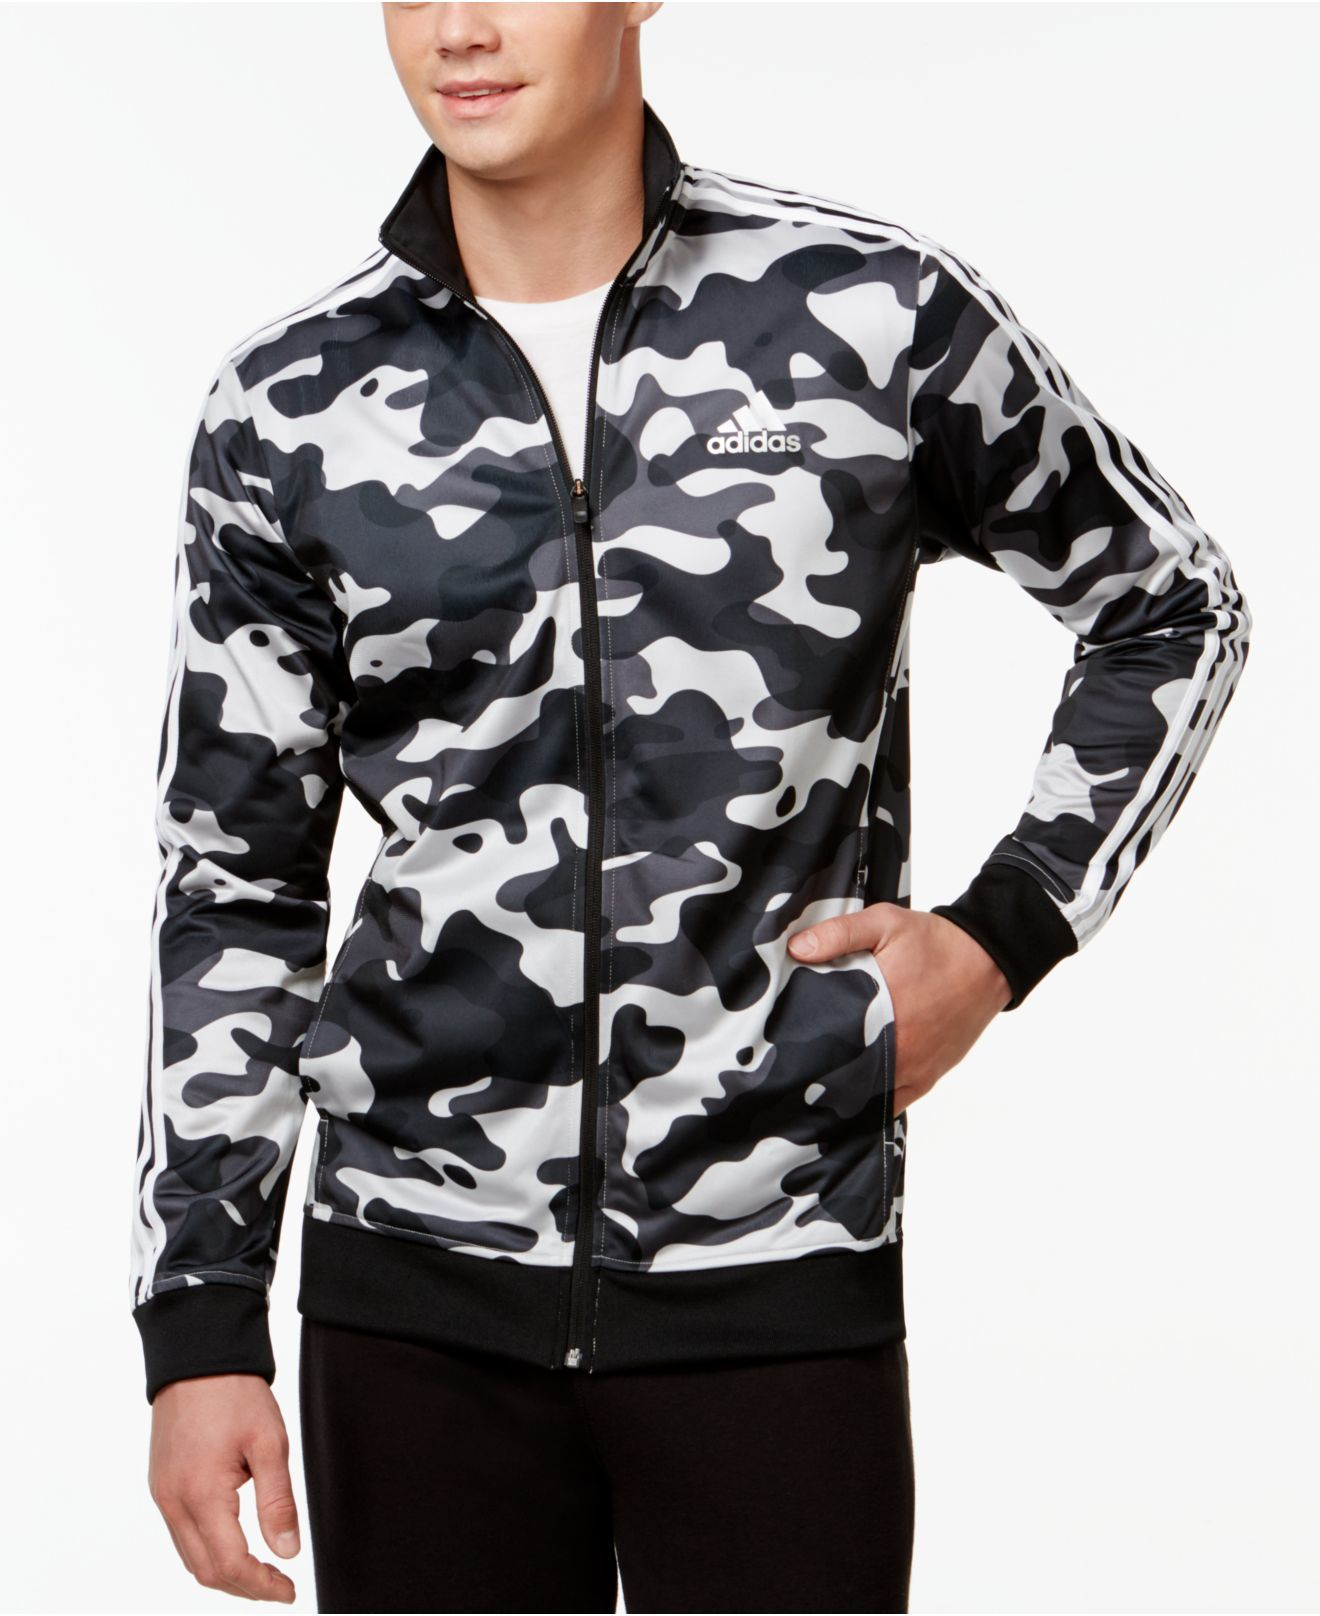 newest 32390 26668 Adidas originals Men s Camo Print Track Jacket in Gray for Men   Lyst